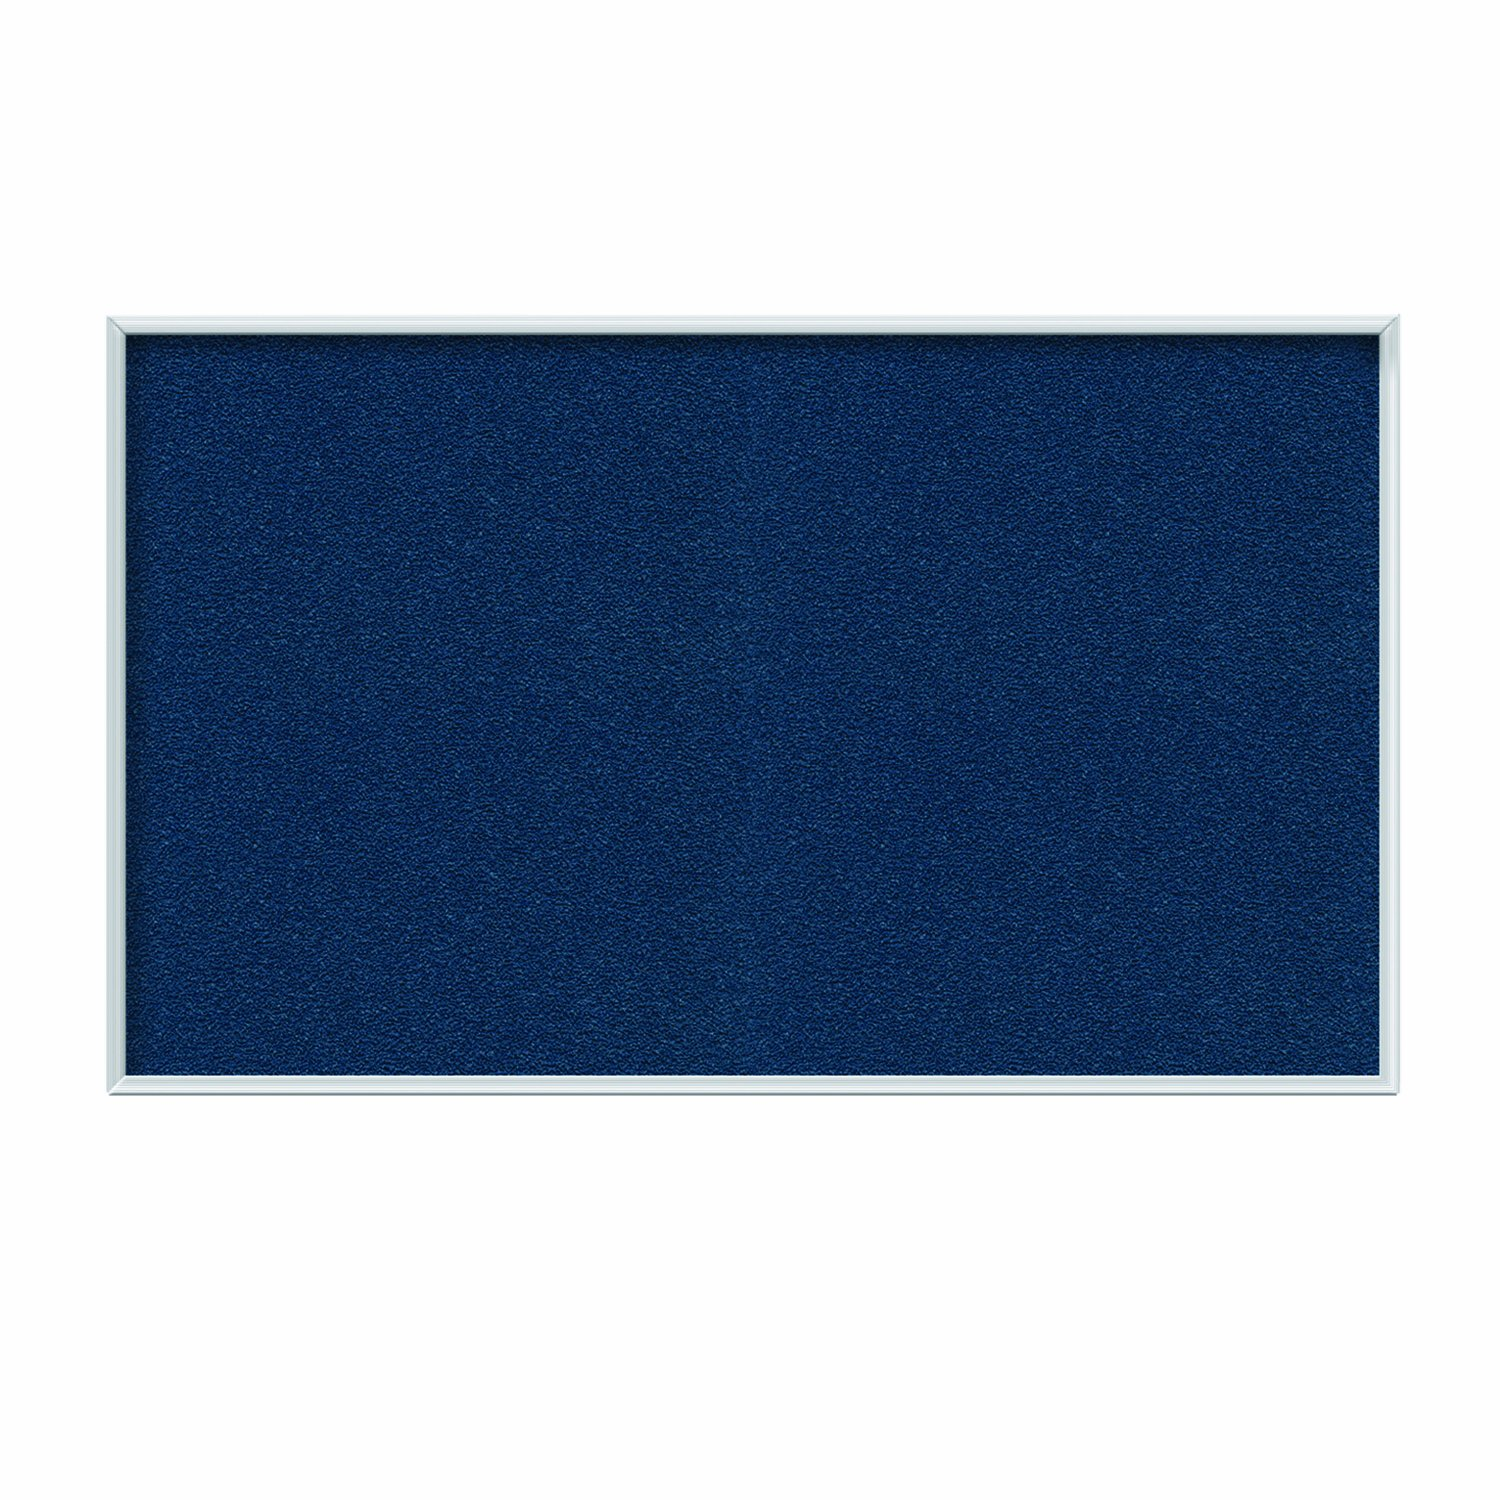 Ghent Navy Vinyl Bulletin Board, 48.5'' x 72.5'', Aluminum Frame, Made in the USA